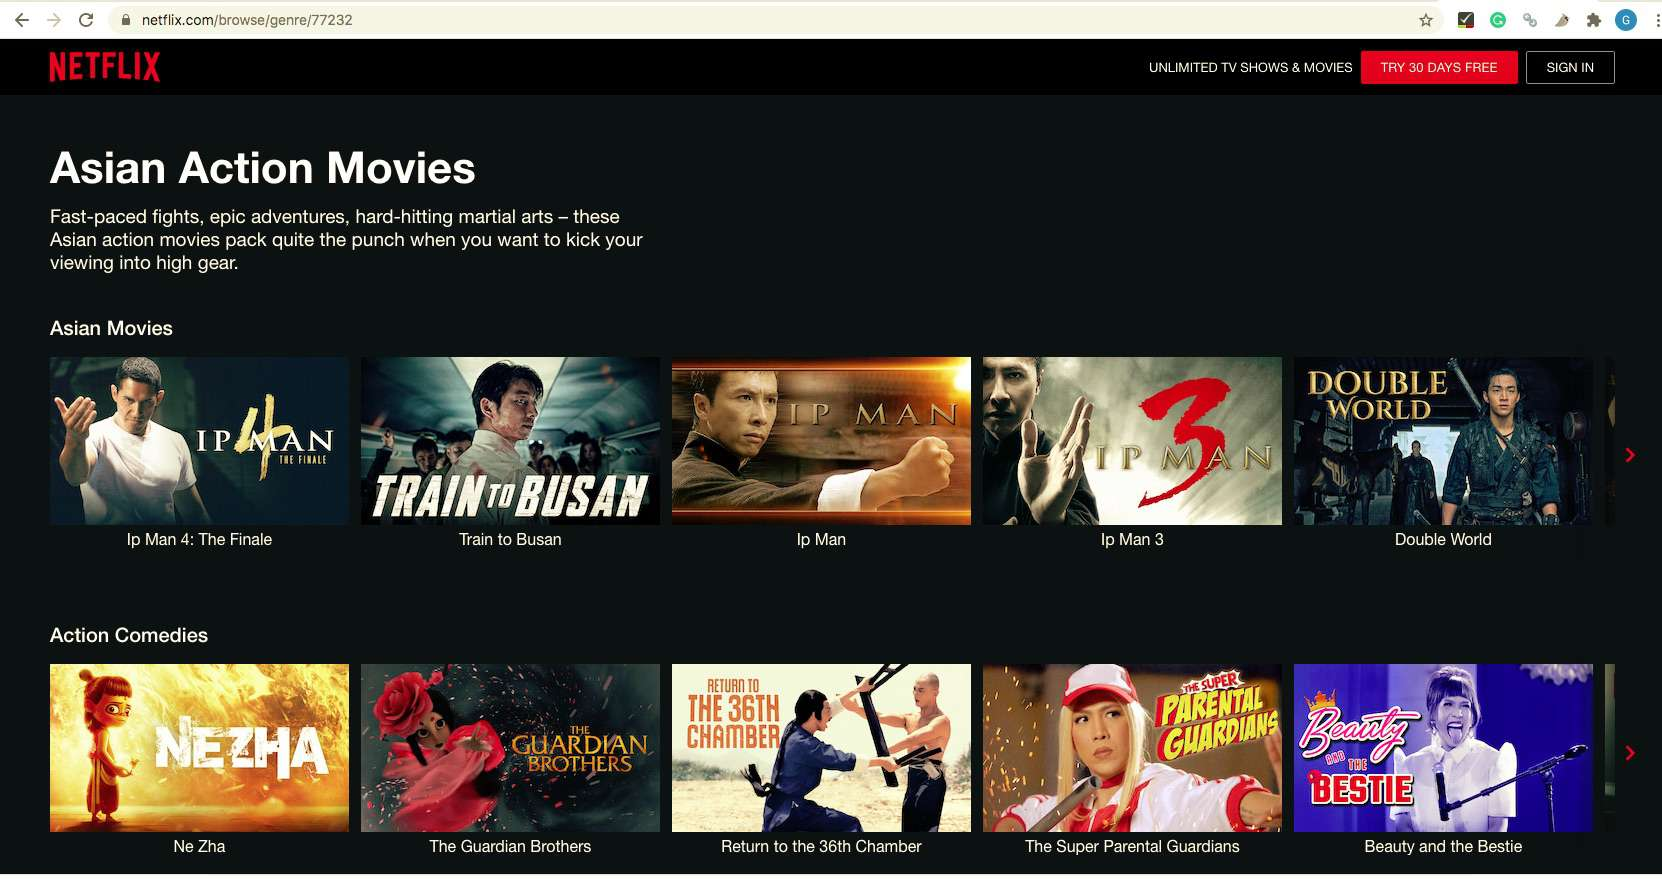 Netflix screen showing Asian Action movies after typing in 77732 secret code